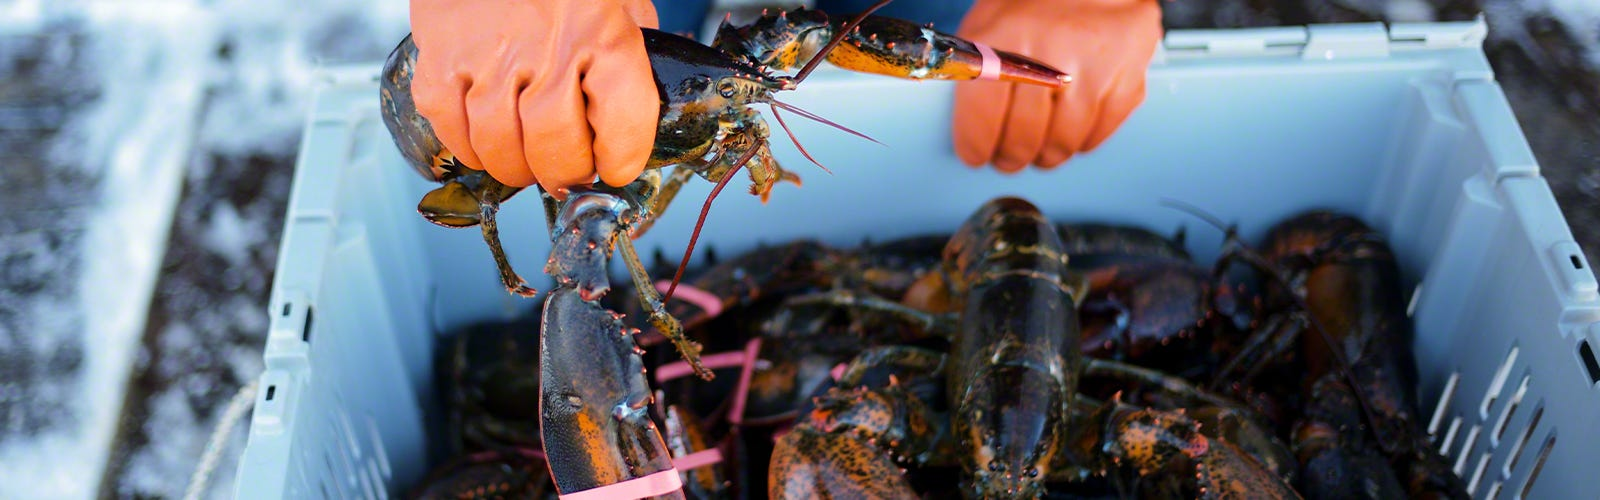 We source our seafood from local fishermen